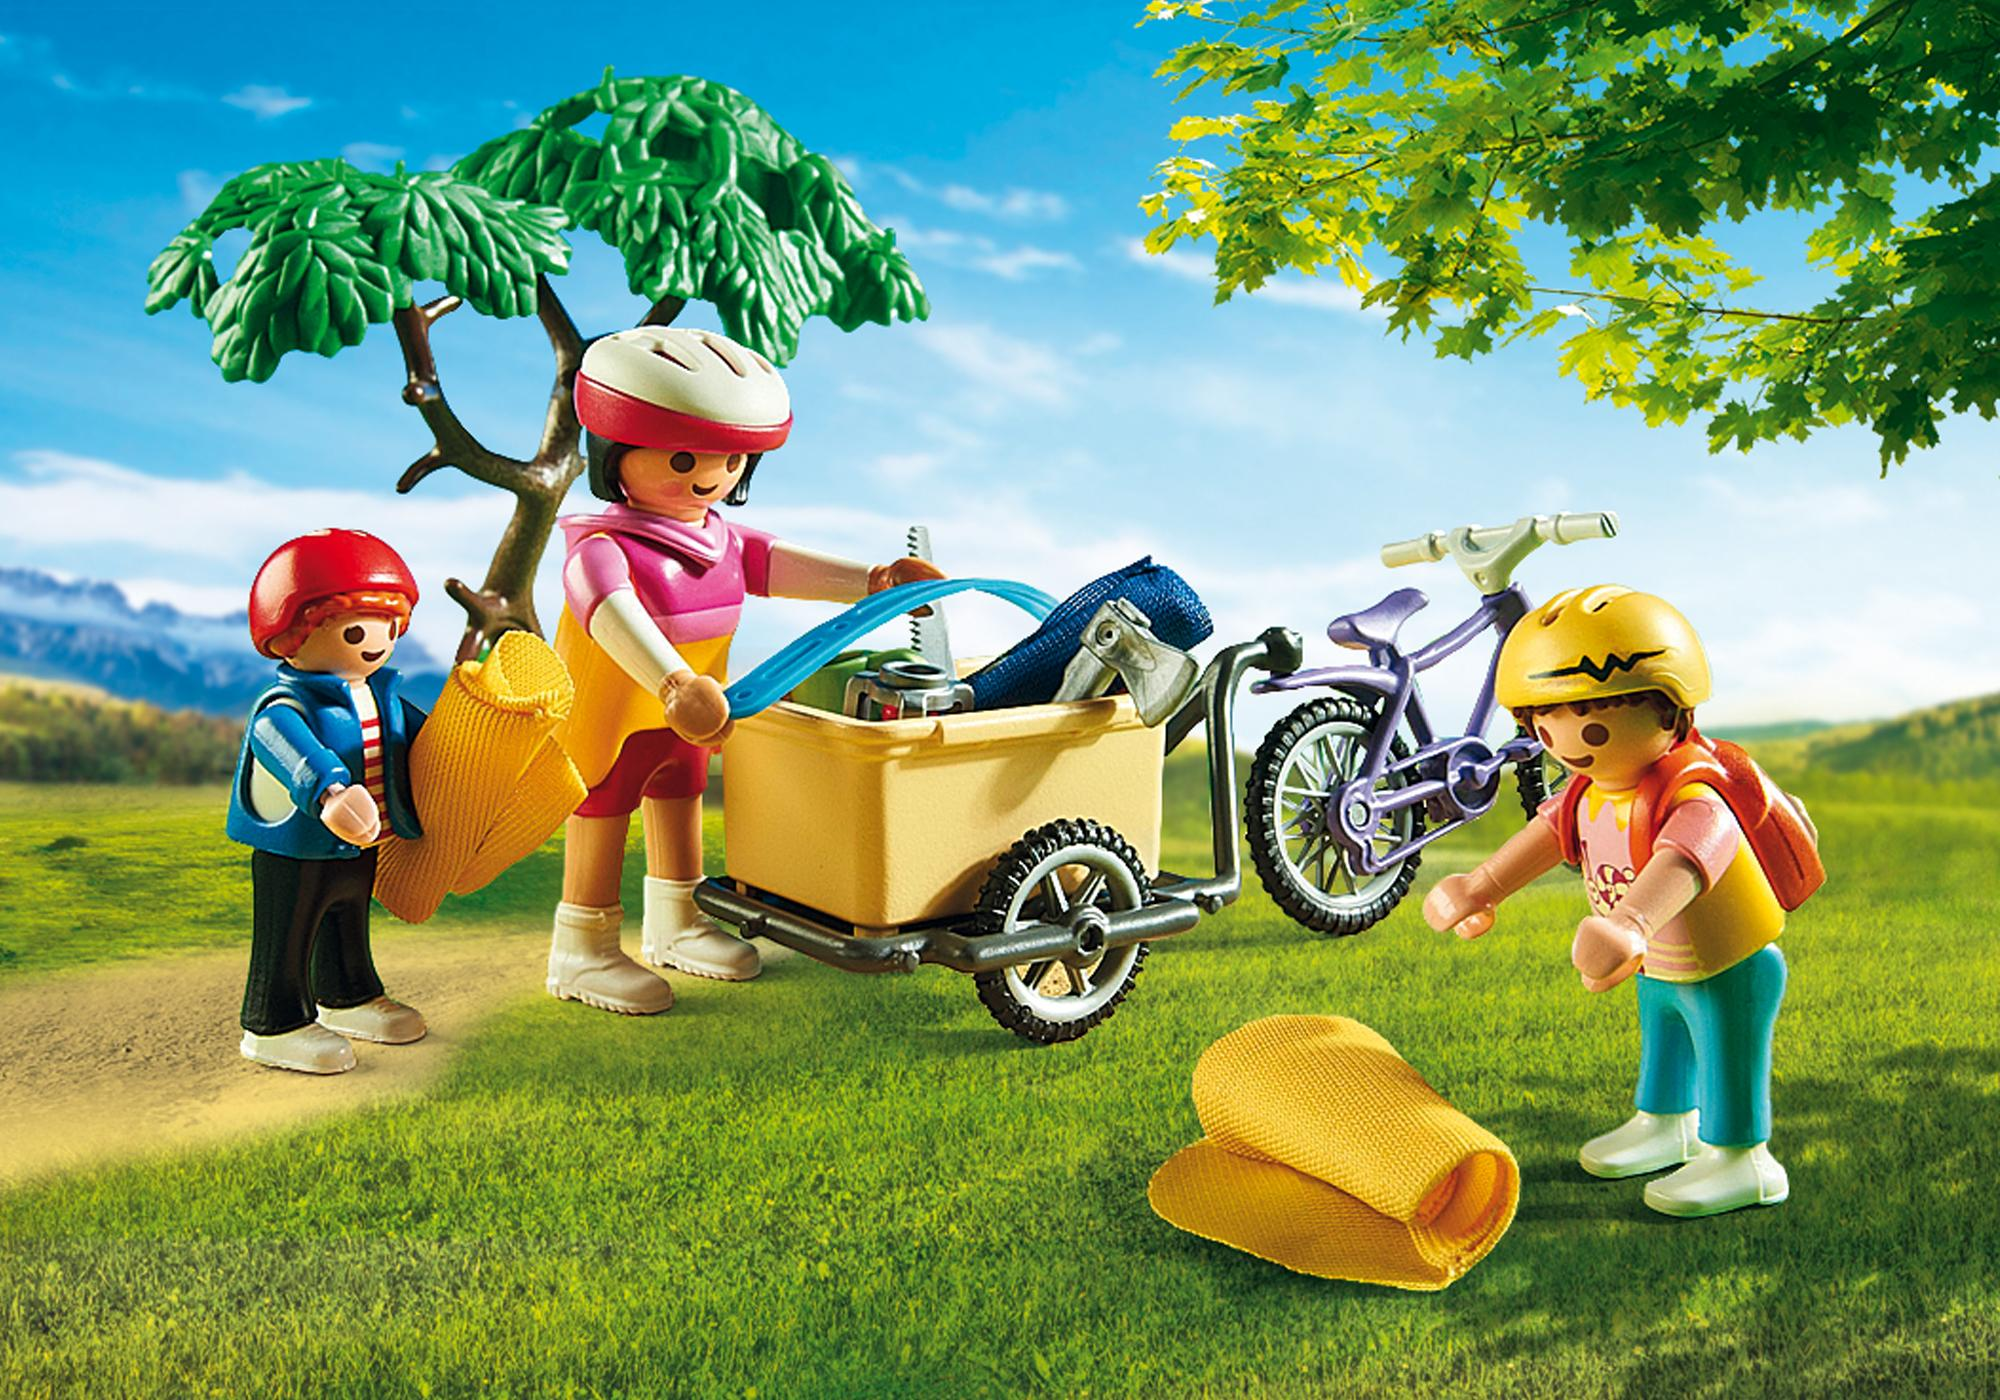 http://media.playmobil.com/i/playmobil/6890_product_extra2